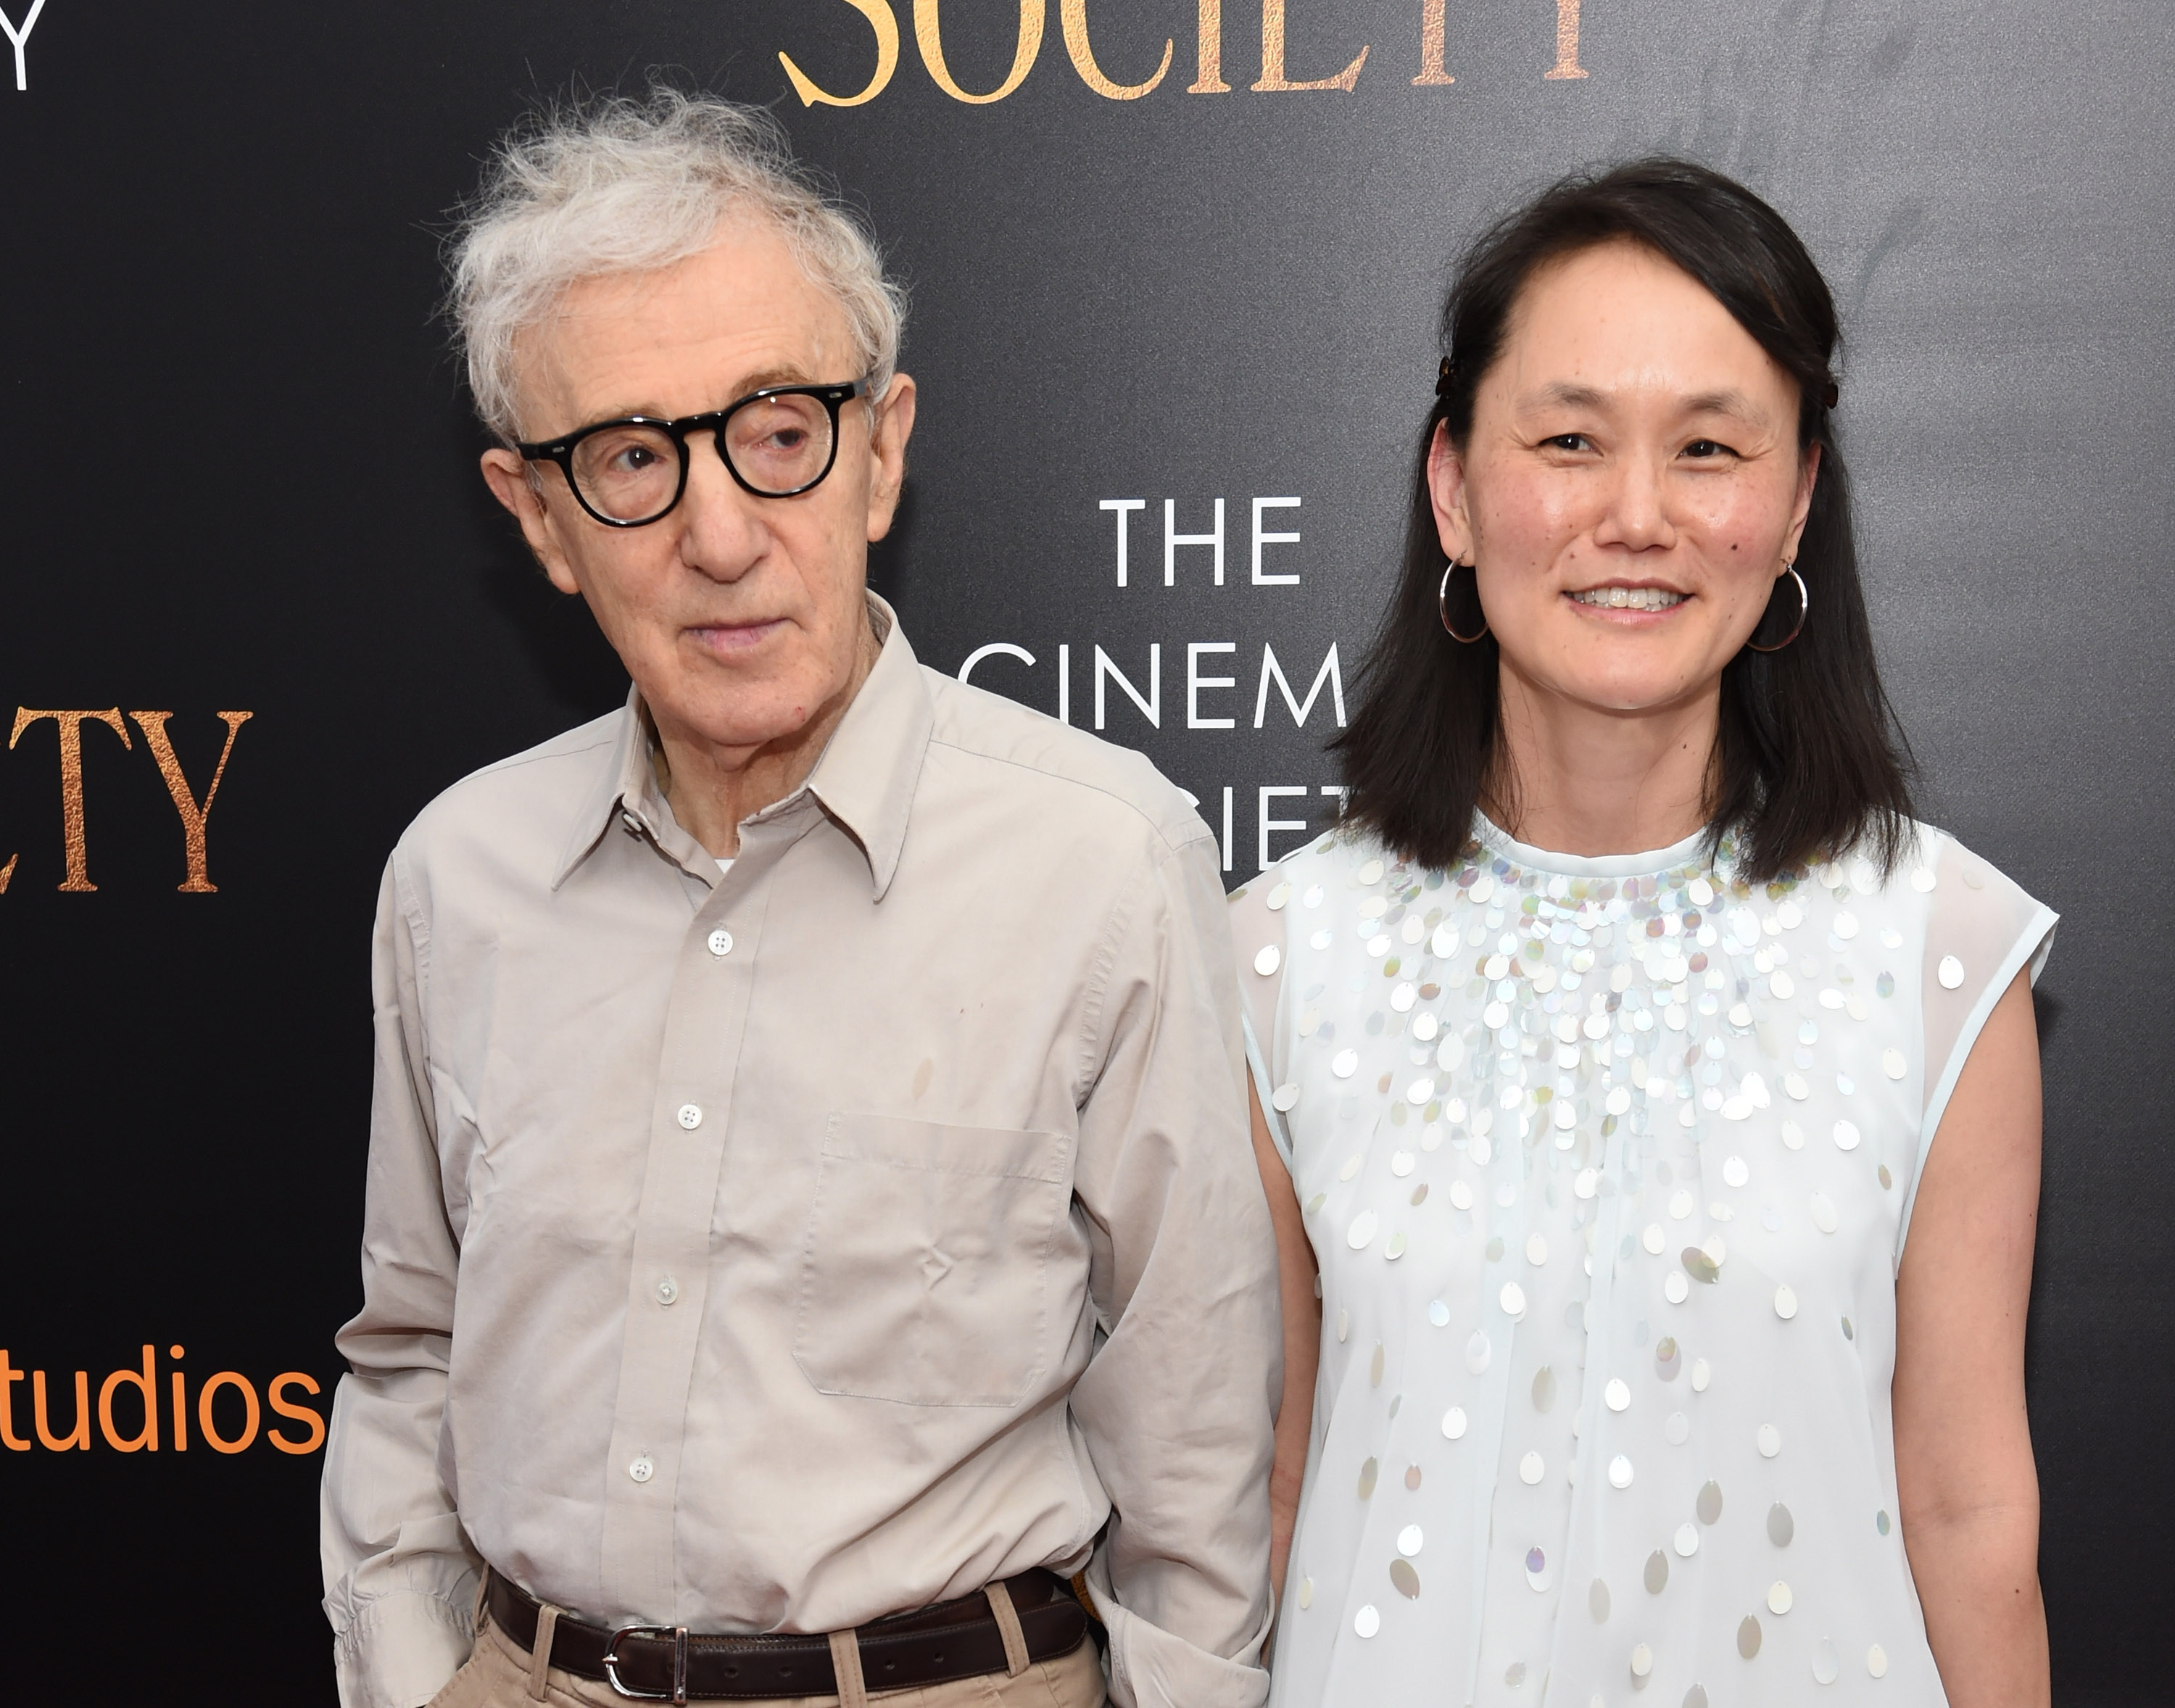 Soon-Yi Previn's interview about Woody Allen and Mia Farrow